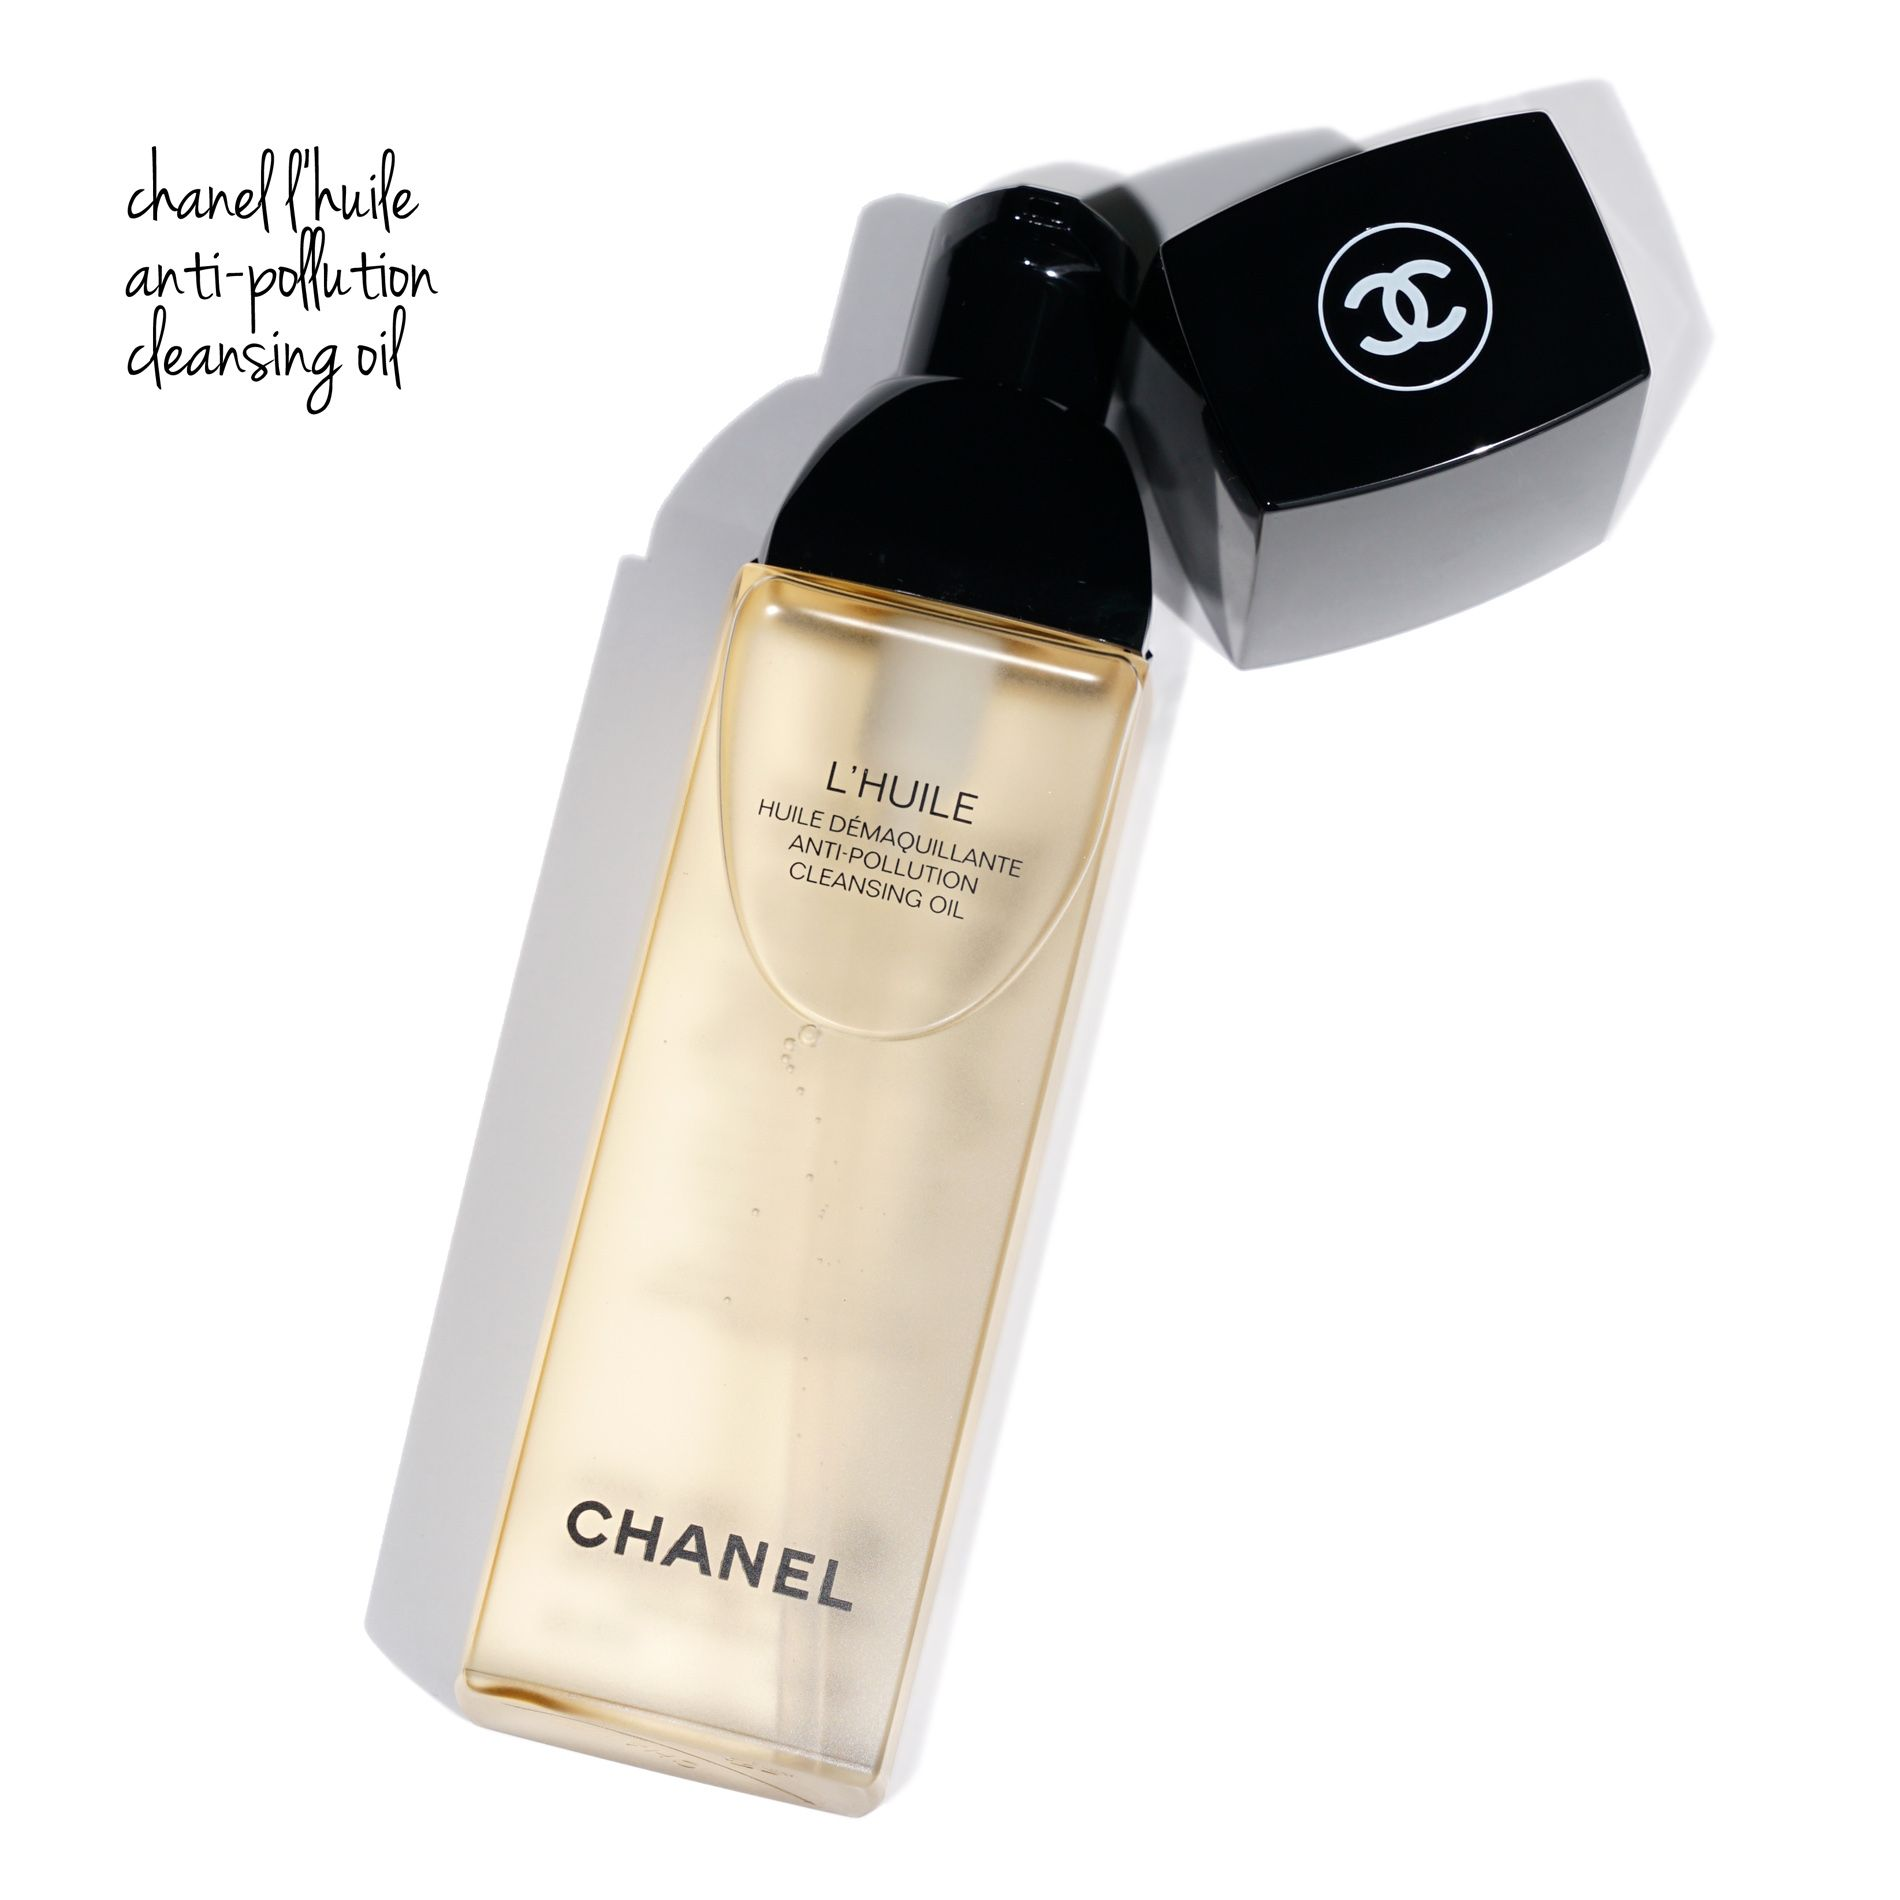 Chanel Cleansing Collection Review Cleansing oil, Chanel